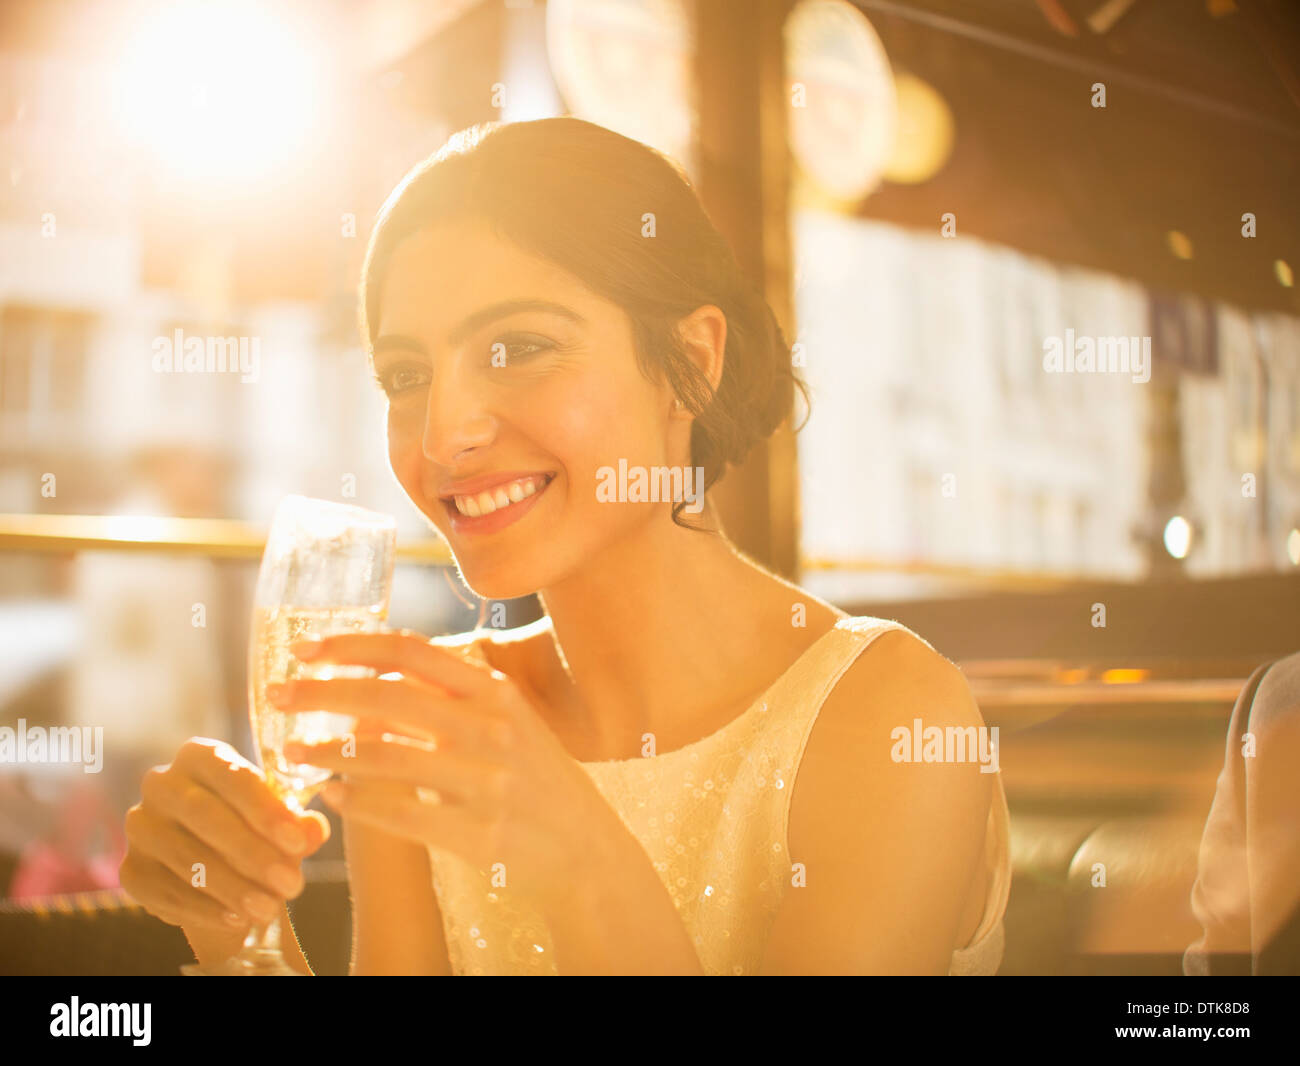 Well-dressed woman drinking champagne in restaurant - Stock Image